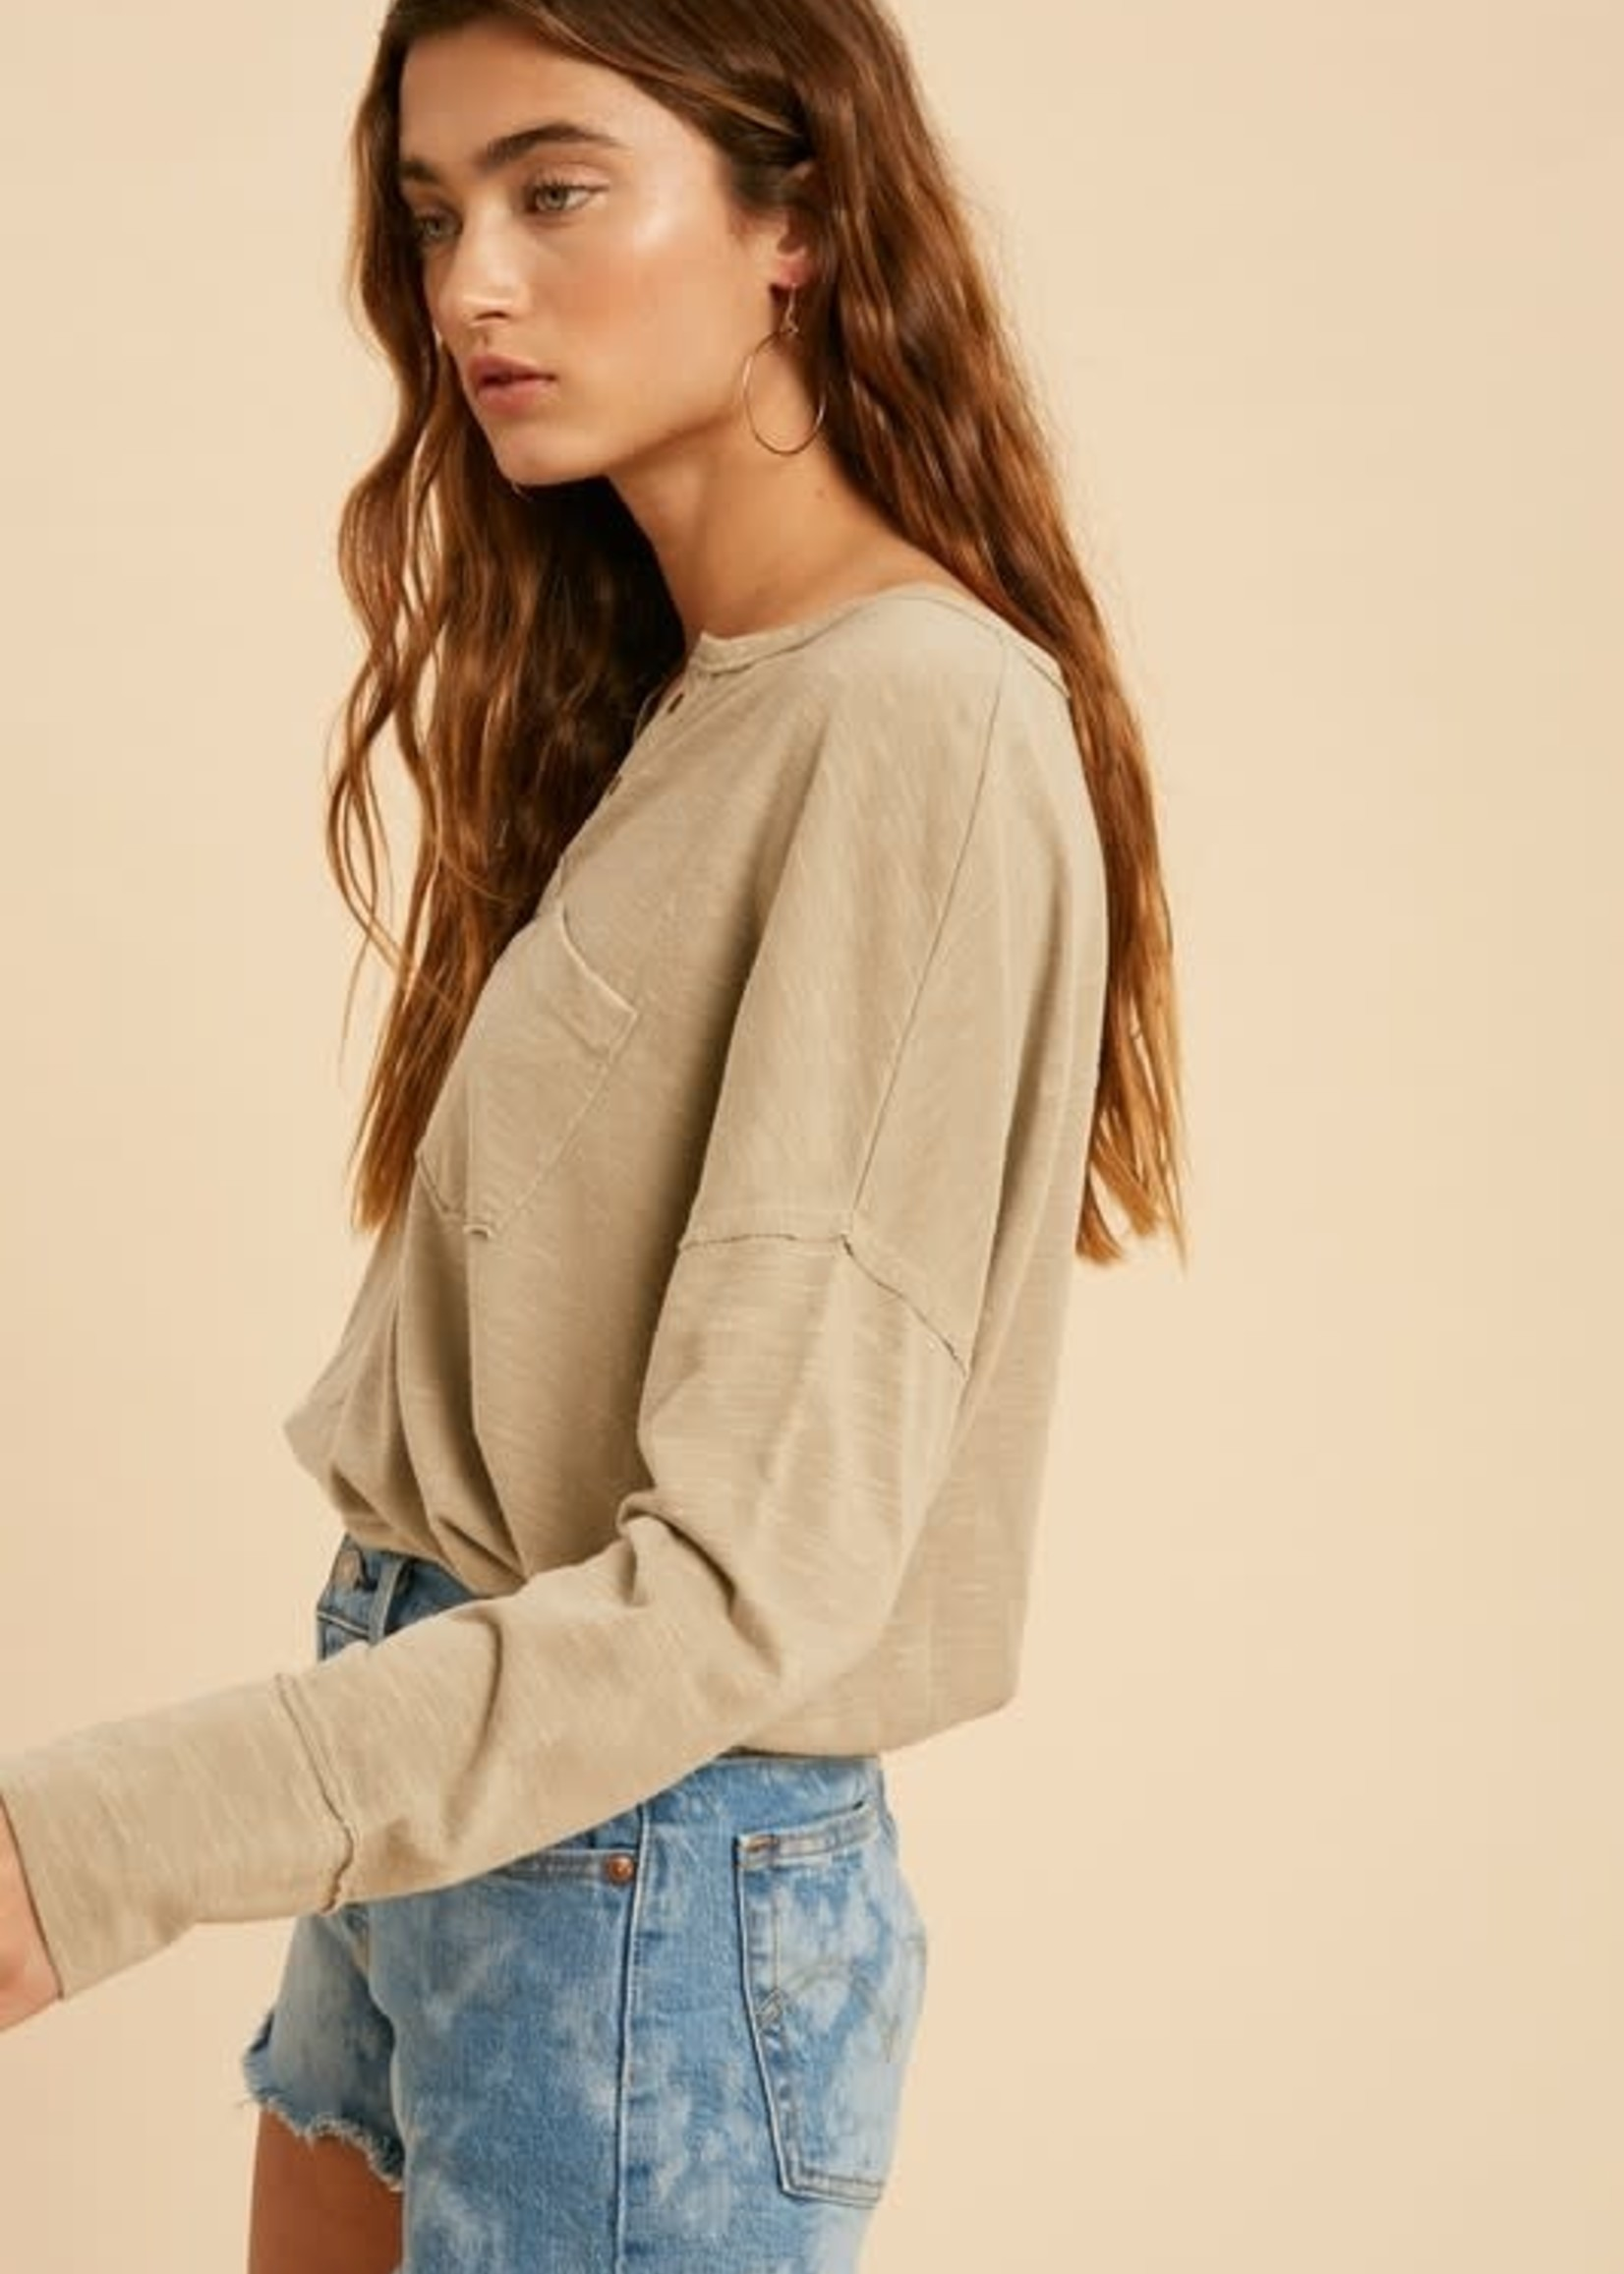 Washed Eyelet Knit Top - Eggshell